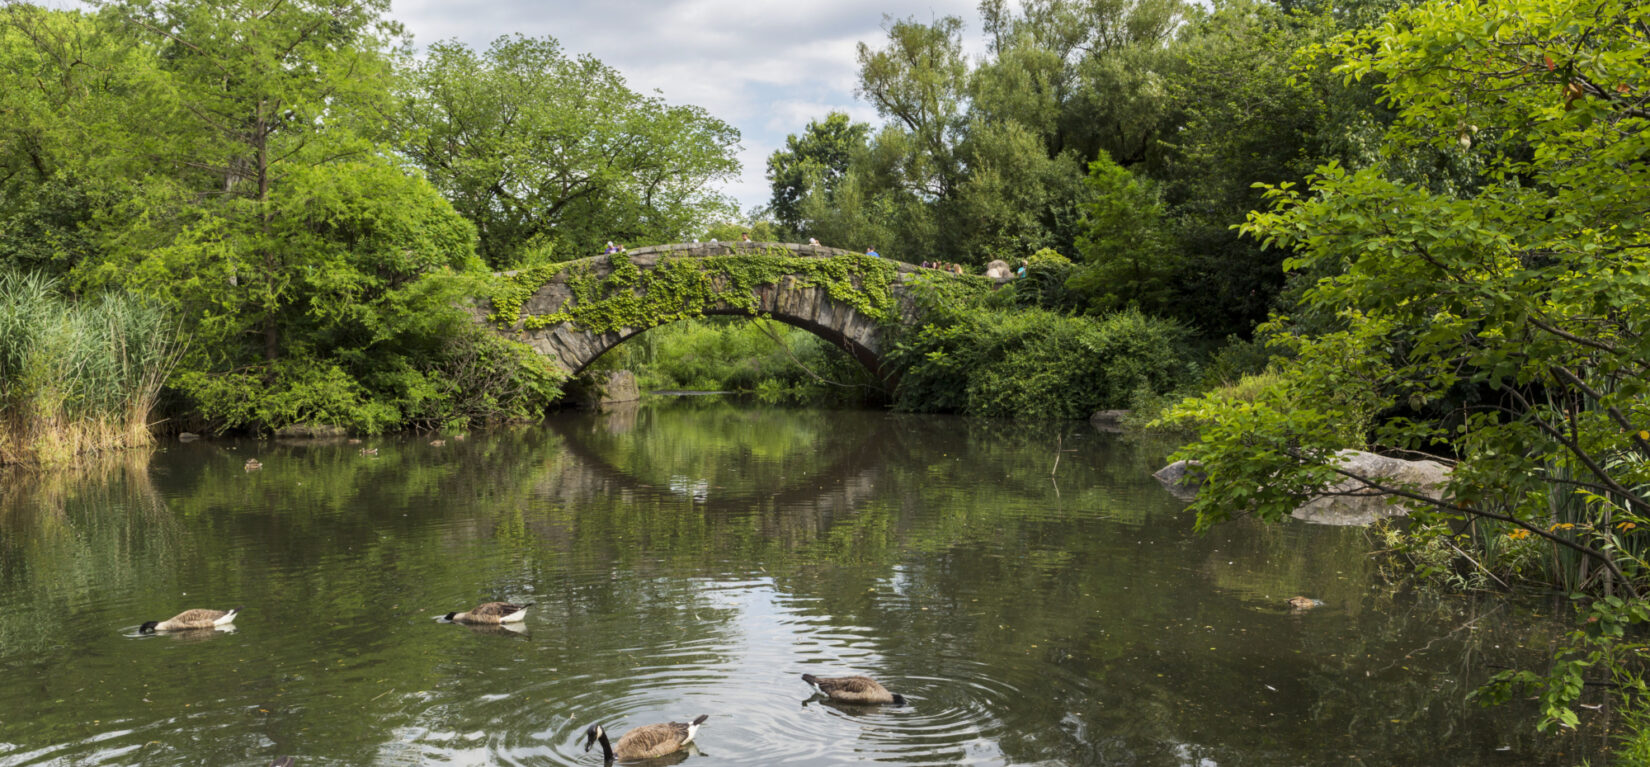 Ducks enjoy the placid waters of the Pond in summer.